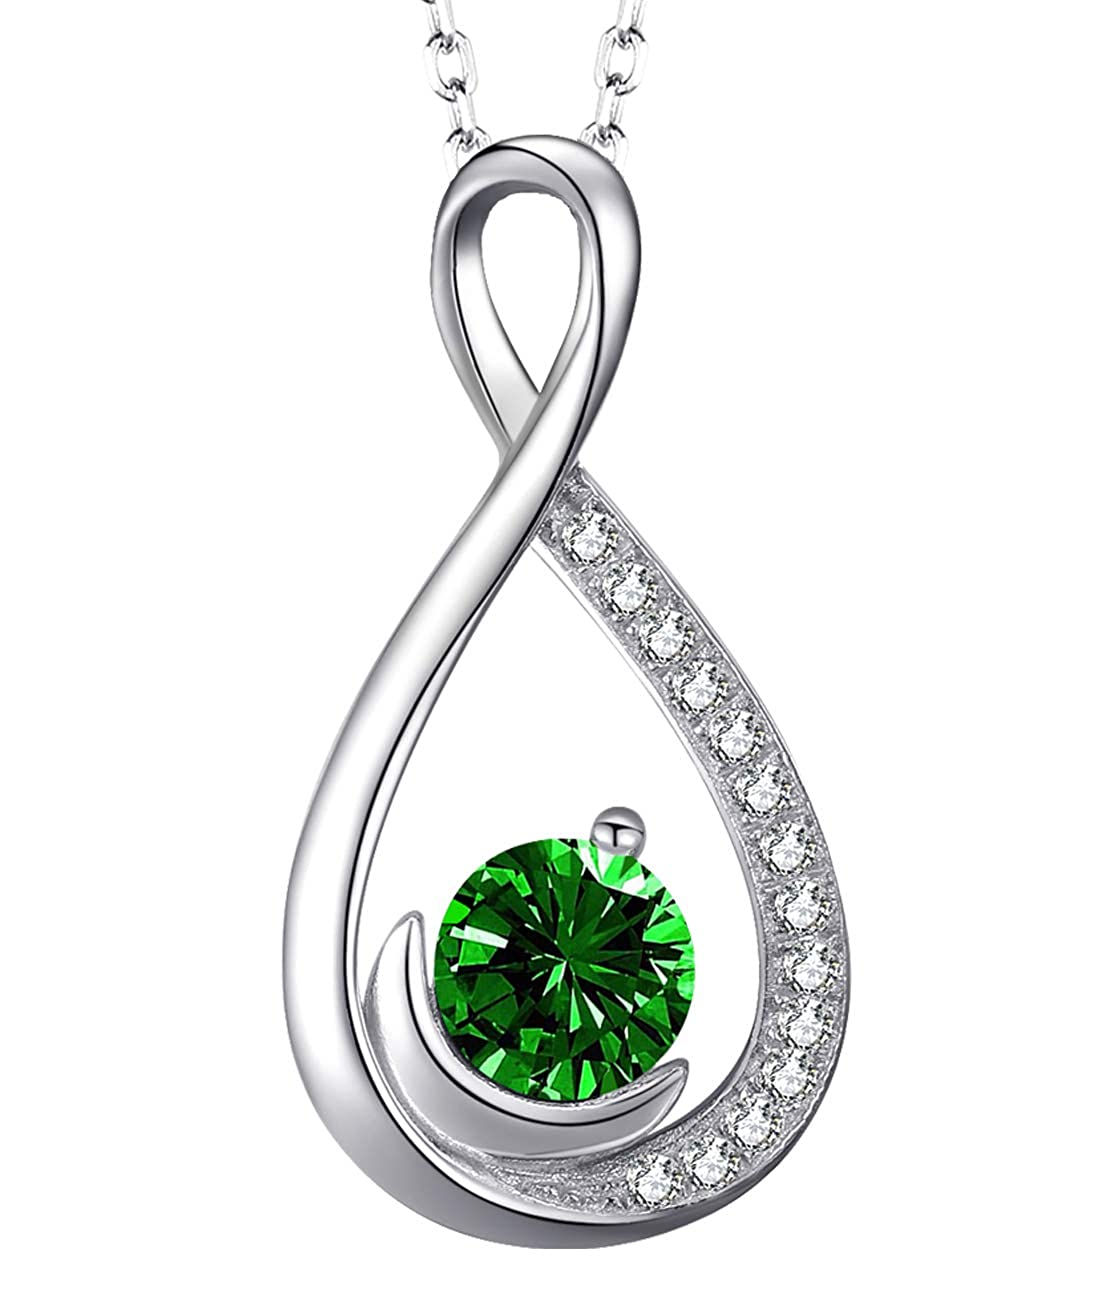 Amazon Endless Love Infinity And Moon Necklace Sterling Silver Jewelry Gifts For Women Green Emerald Swarovski Anniversary Birthday